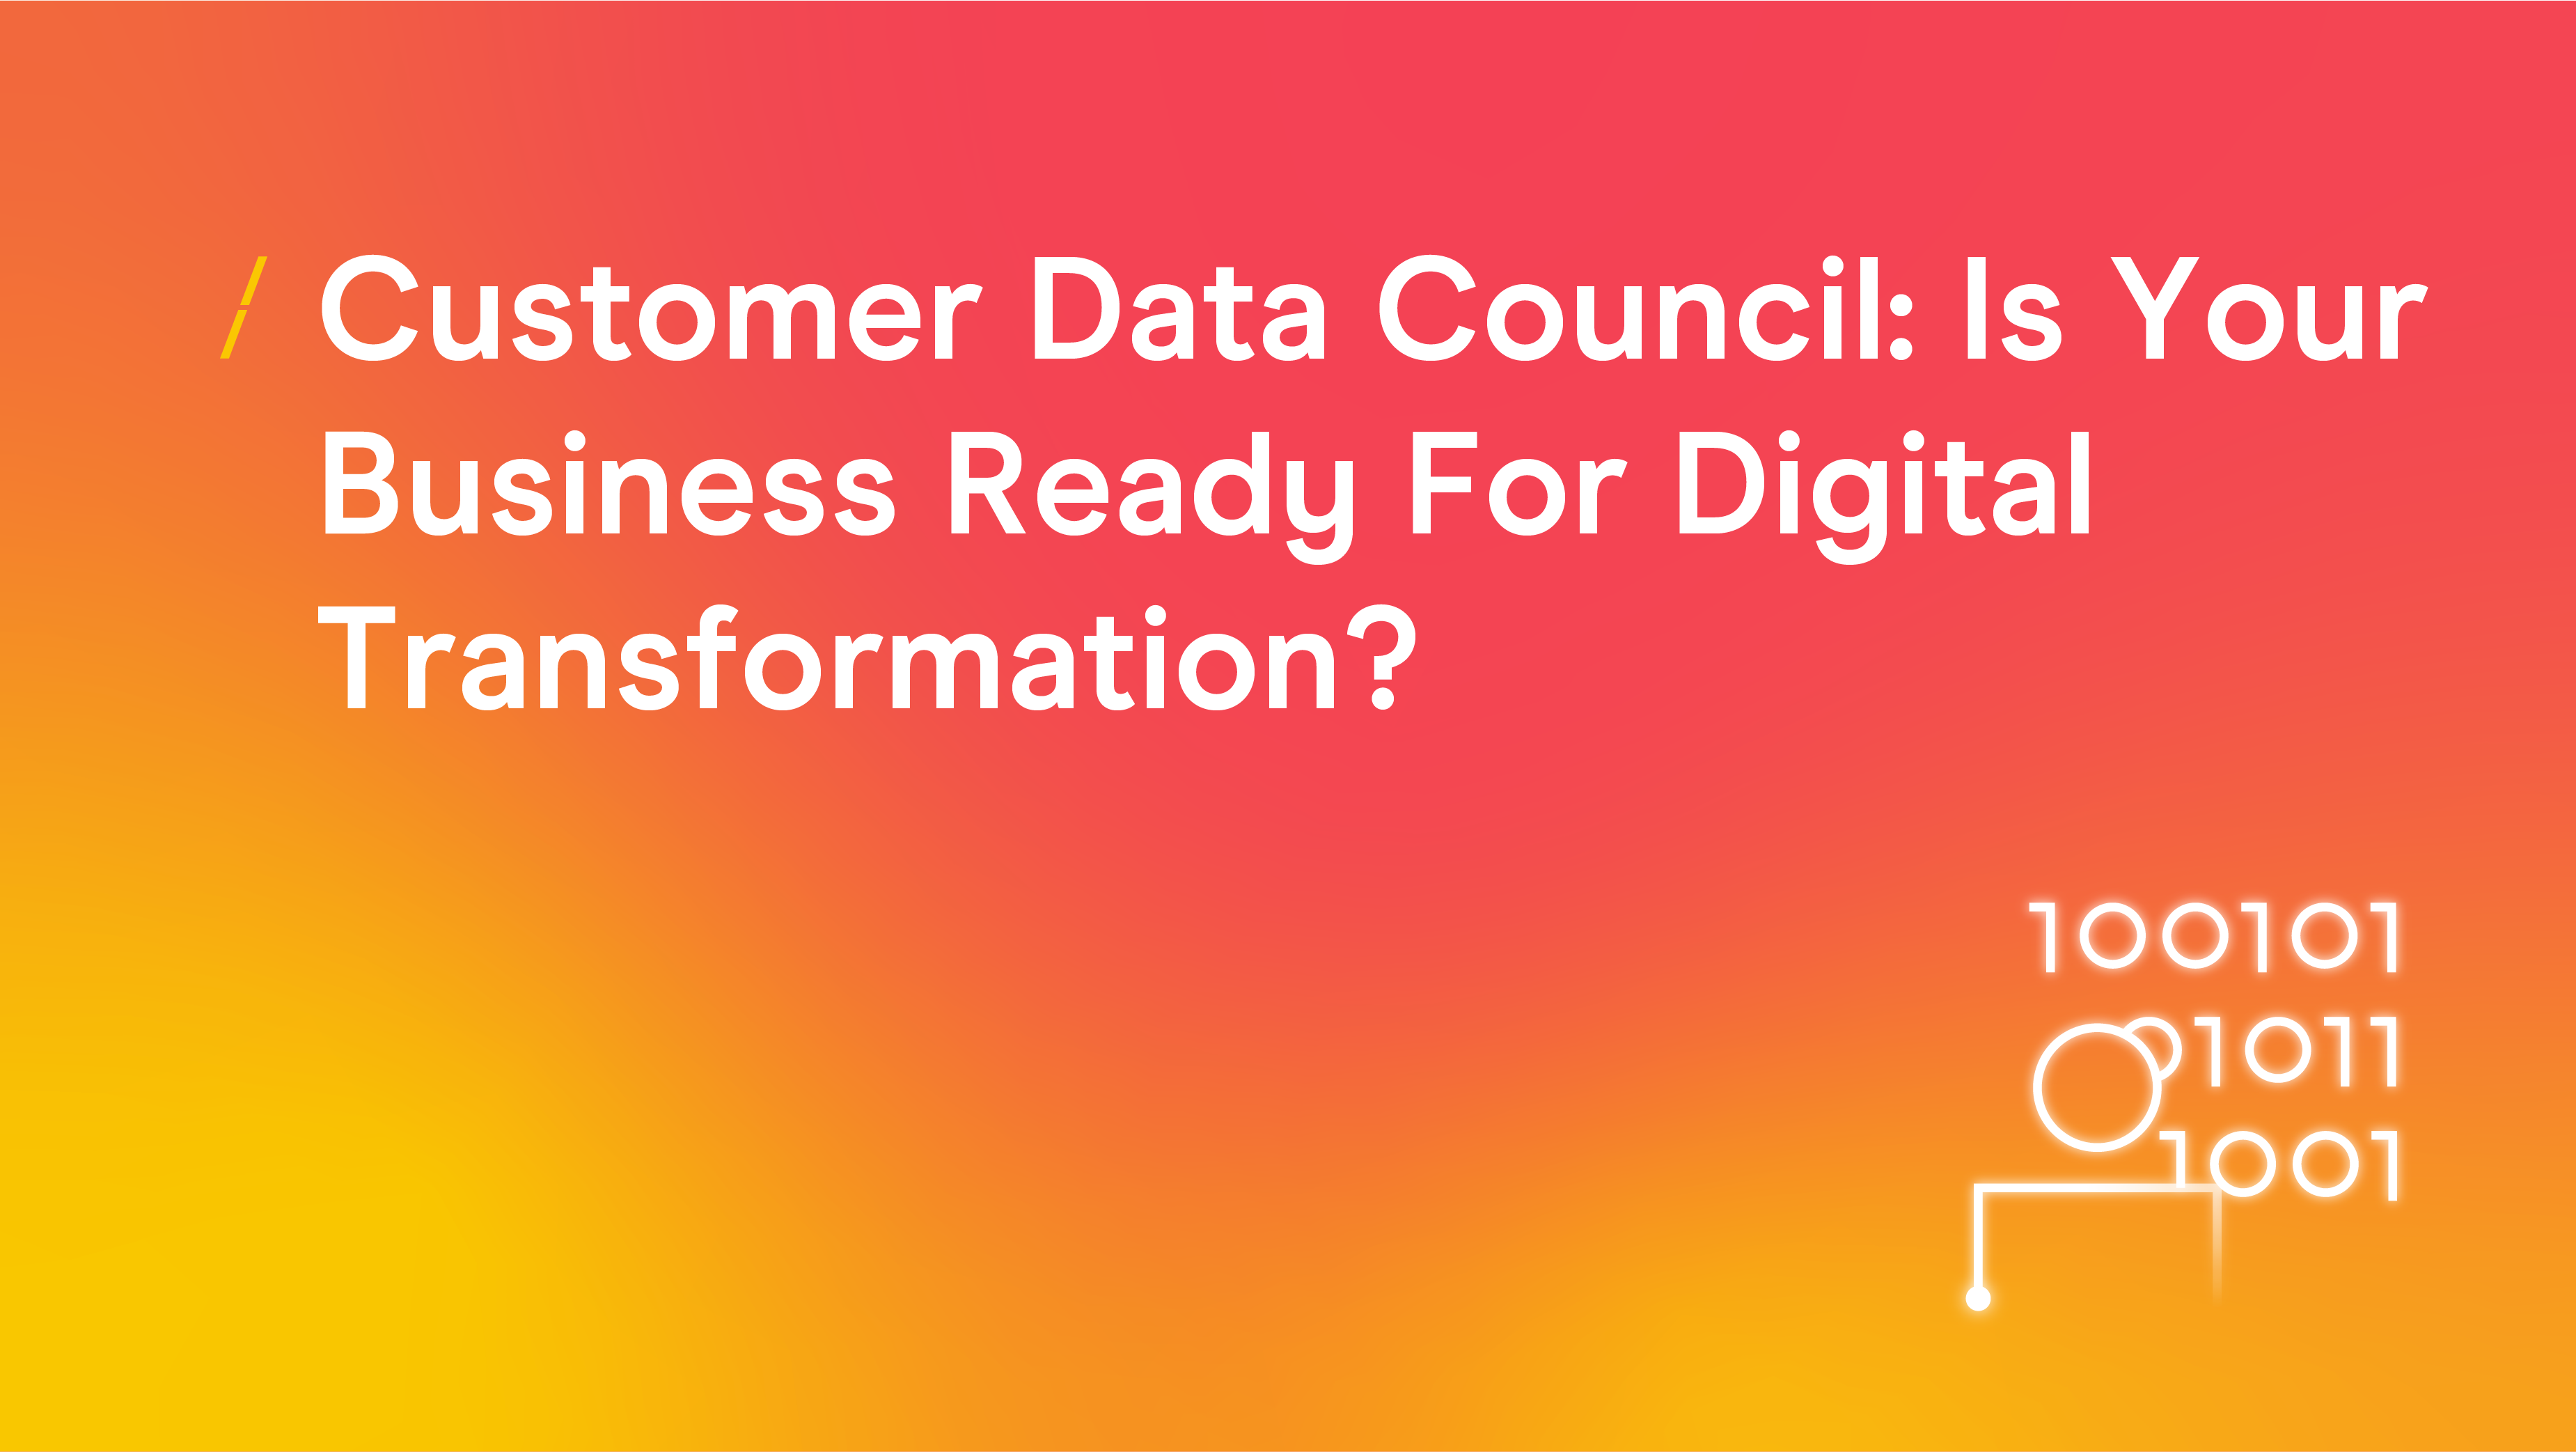 Customer Data Council- Is Your Business Ready For Digital Transformation_Research articles copy 7.png